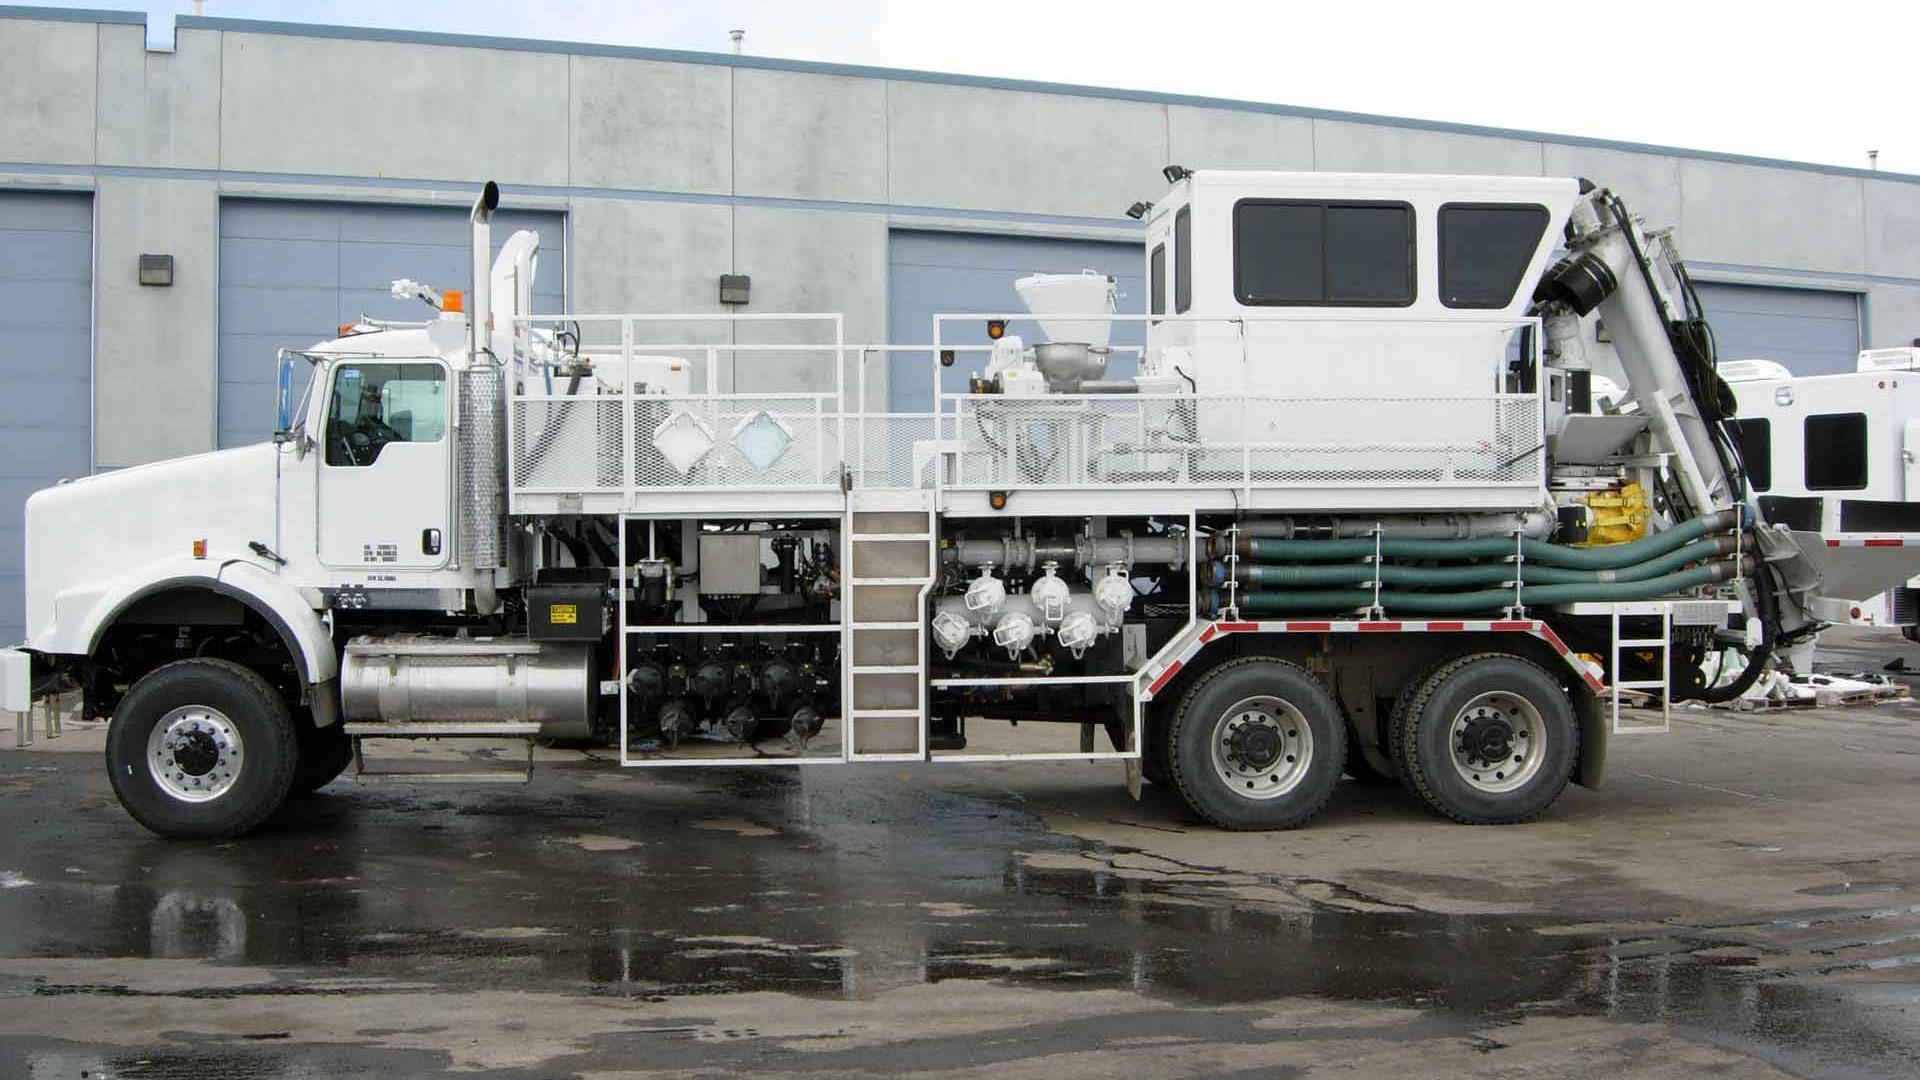 A side view of a parked white truck-mounted fracturing blender